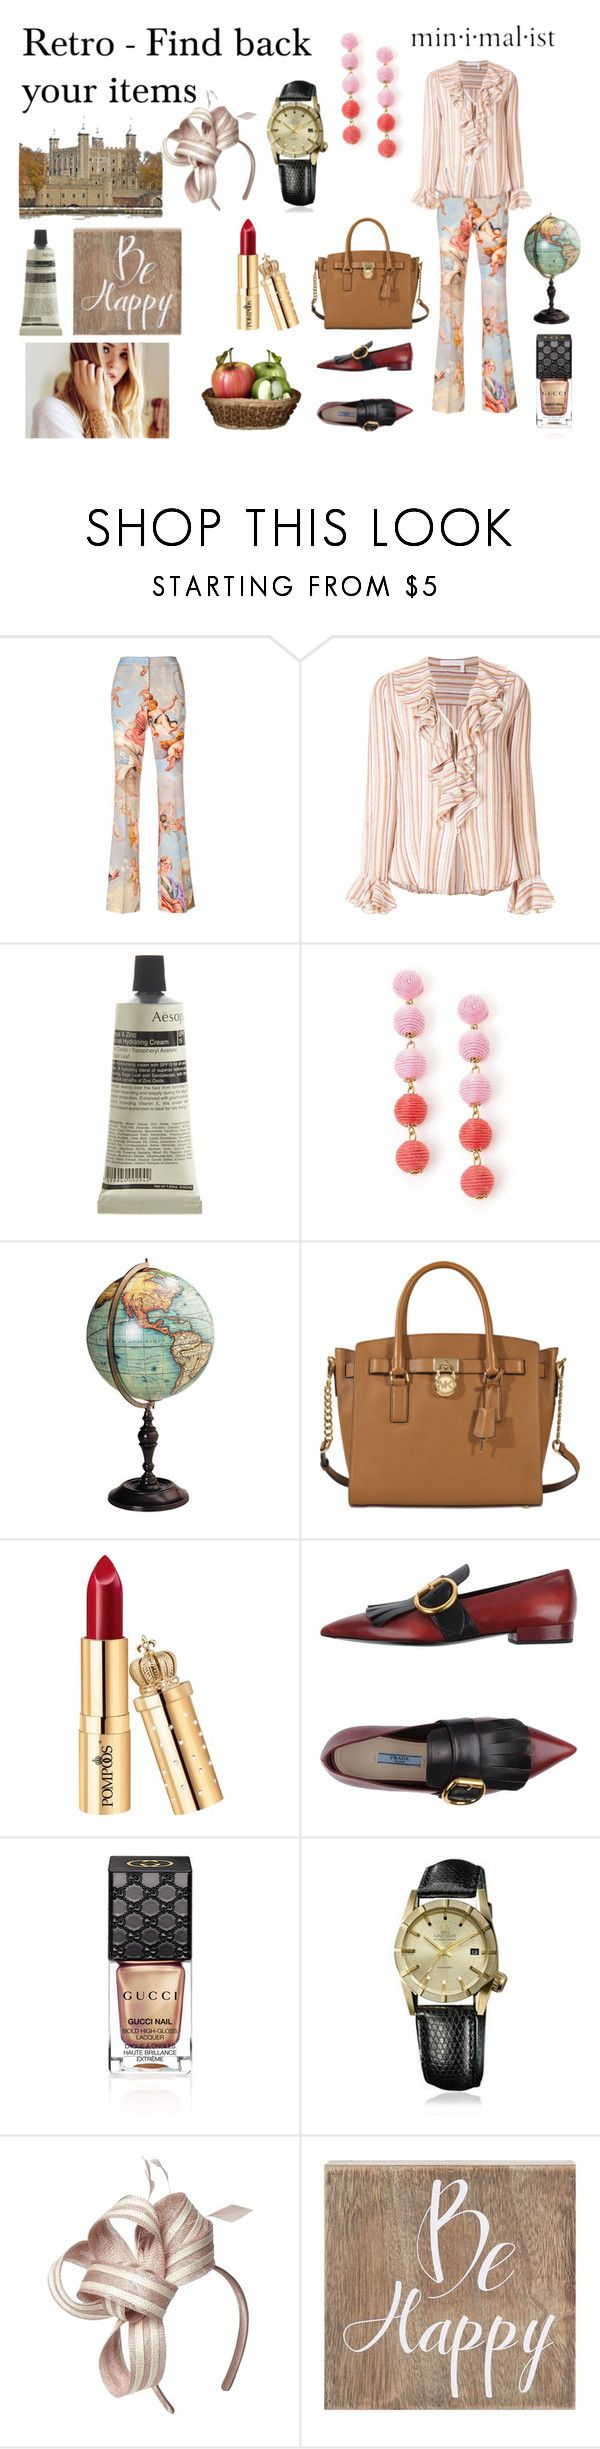 """""""Beige Colour Mode"""" by gift2say ❤ liked on Polyvore featuring Moschino, See by Chloé, Aesop, MICHAEL Michael Kors, Prada, Gucci, March LA.B, Dorothy Perkins and Belle Maison"""